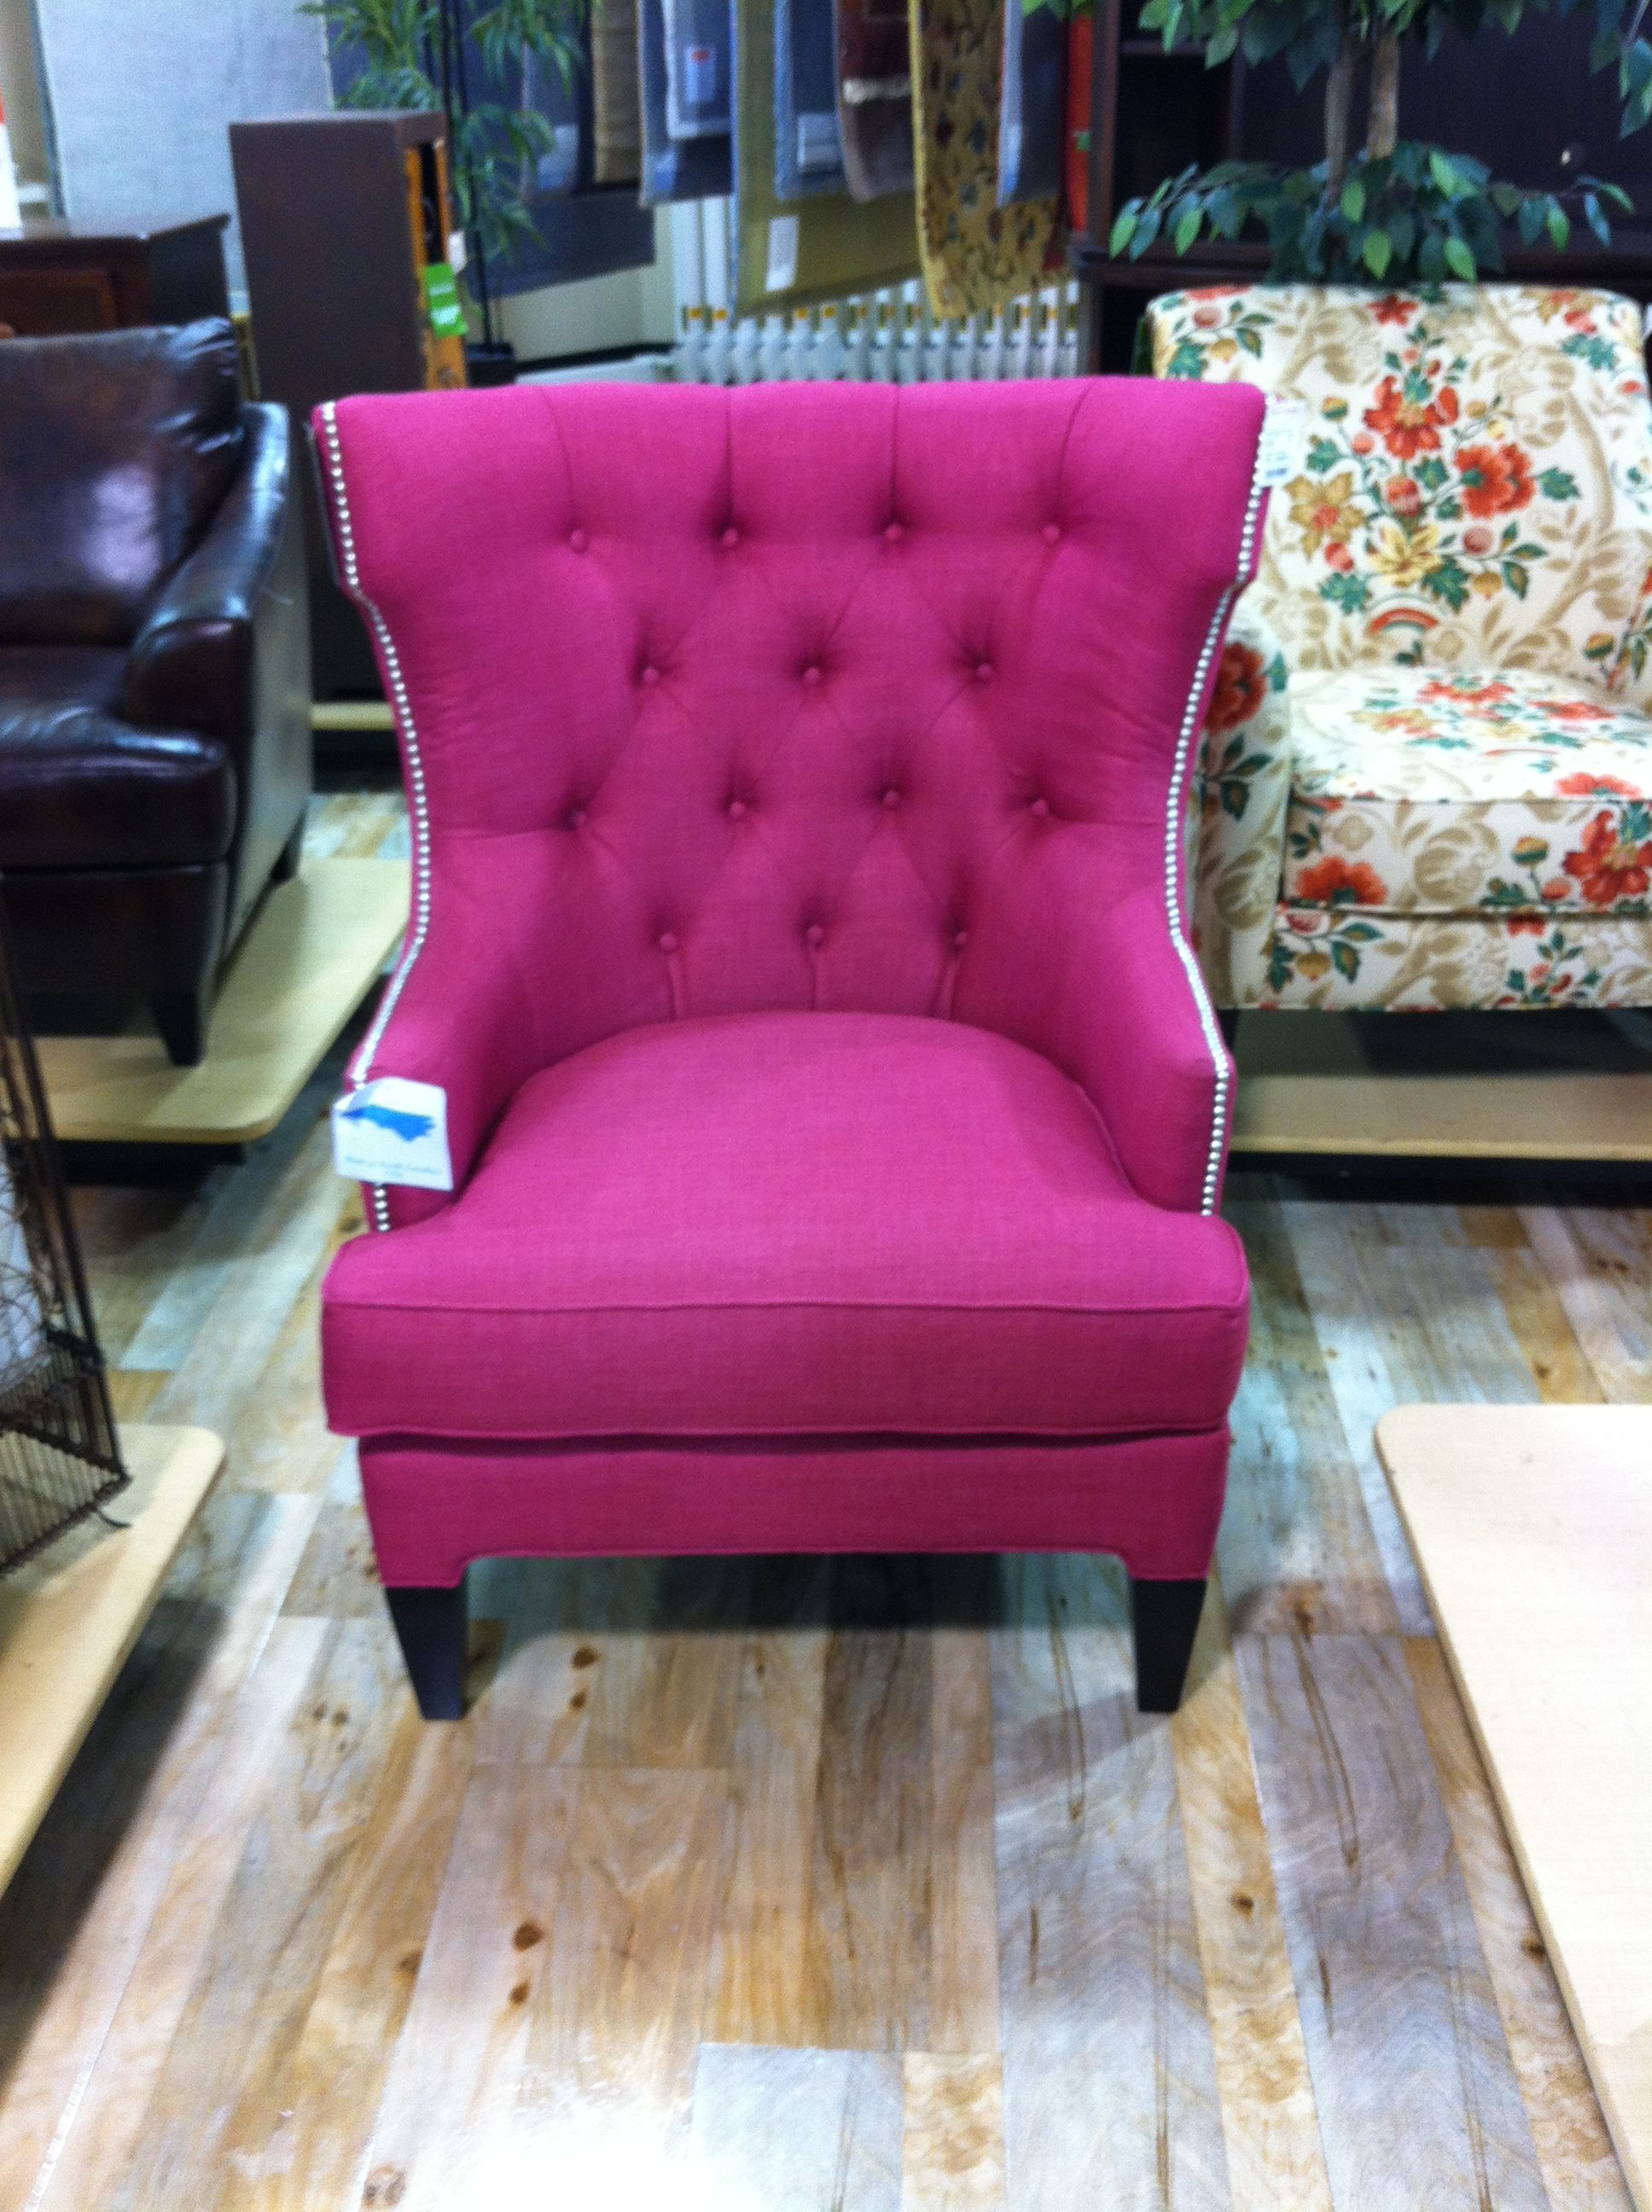 Pink wingback tufted chair with nailhead trim from